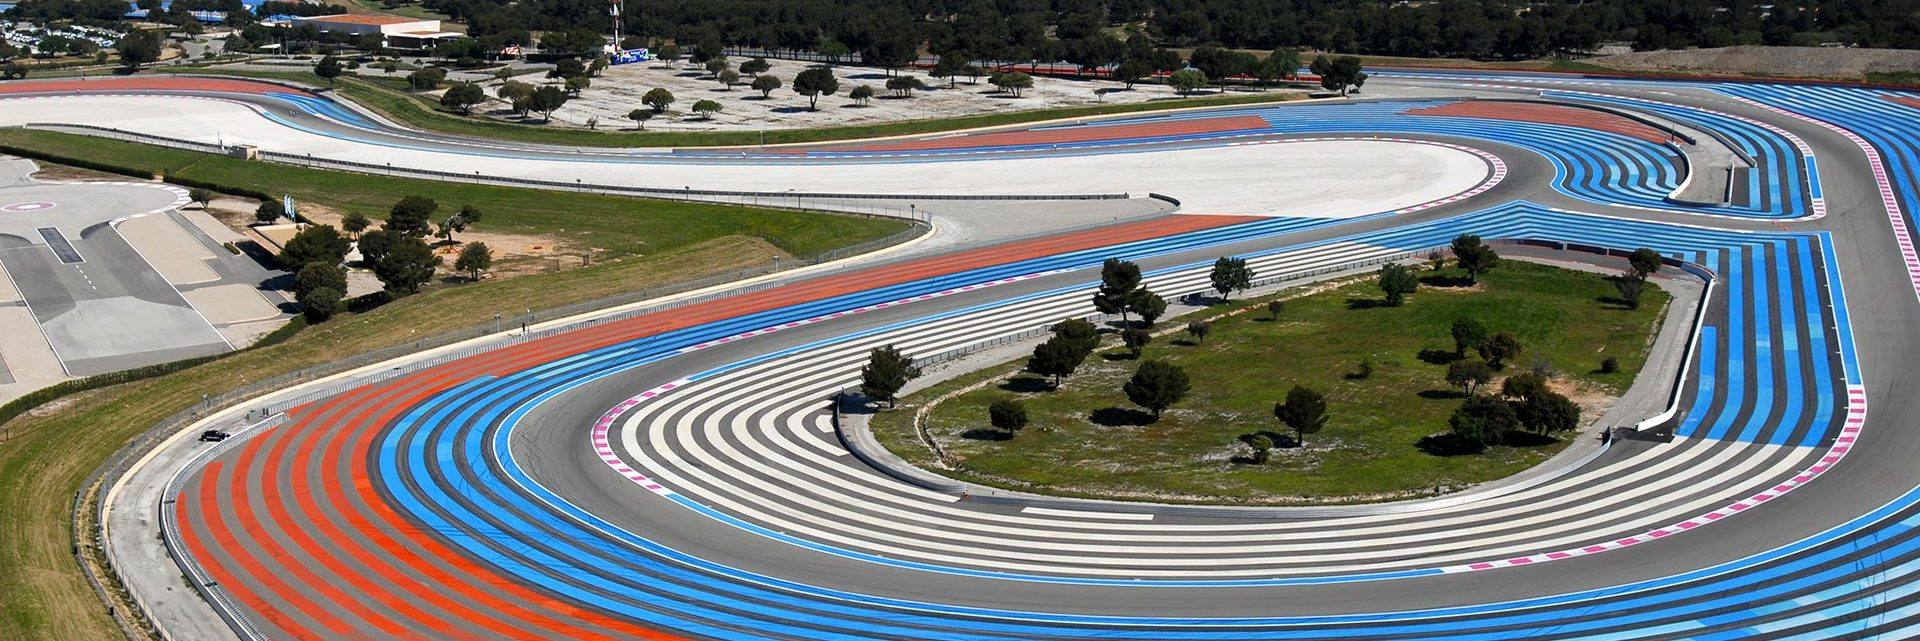 Paul Ricard race track in Castellet